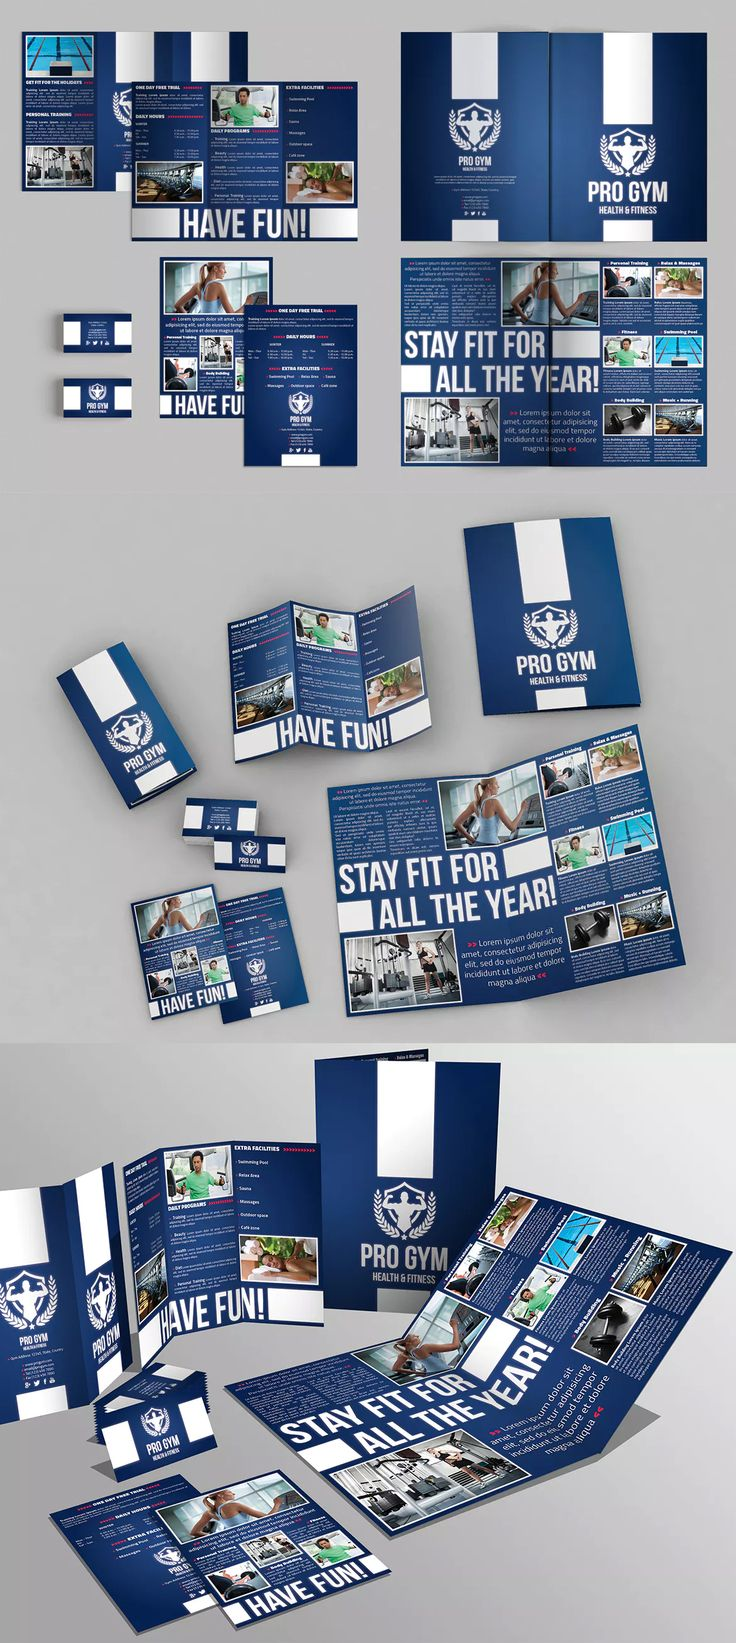 Set of Brochures Templates AI, EPS, INDD, PSD - A4 and US Letter Size